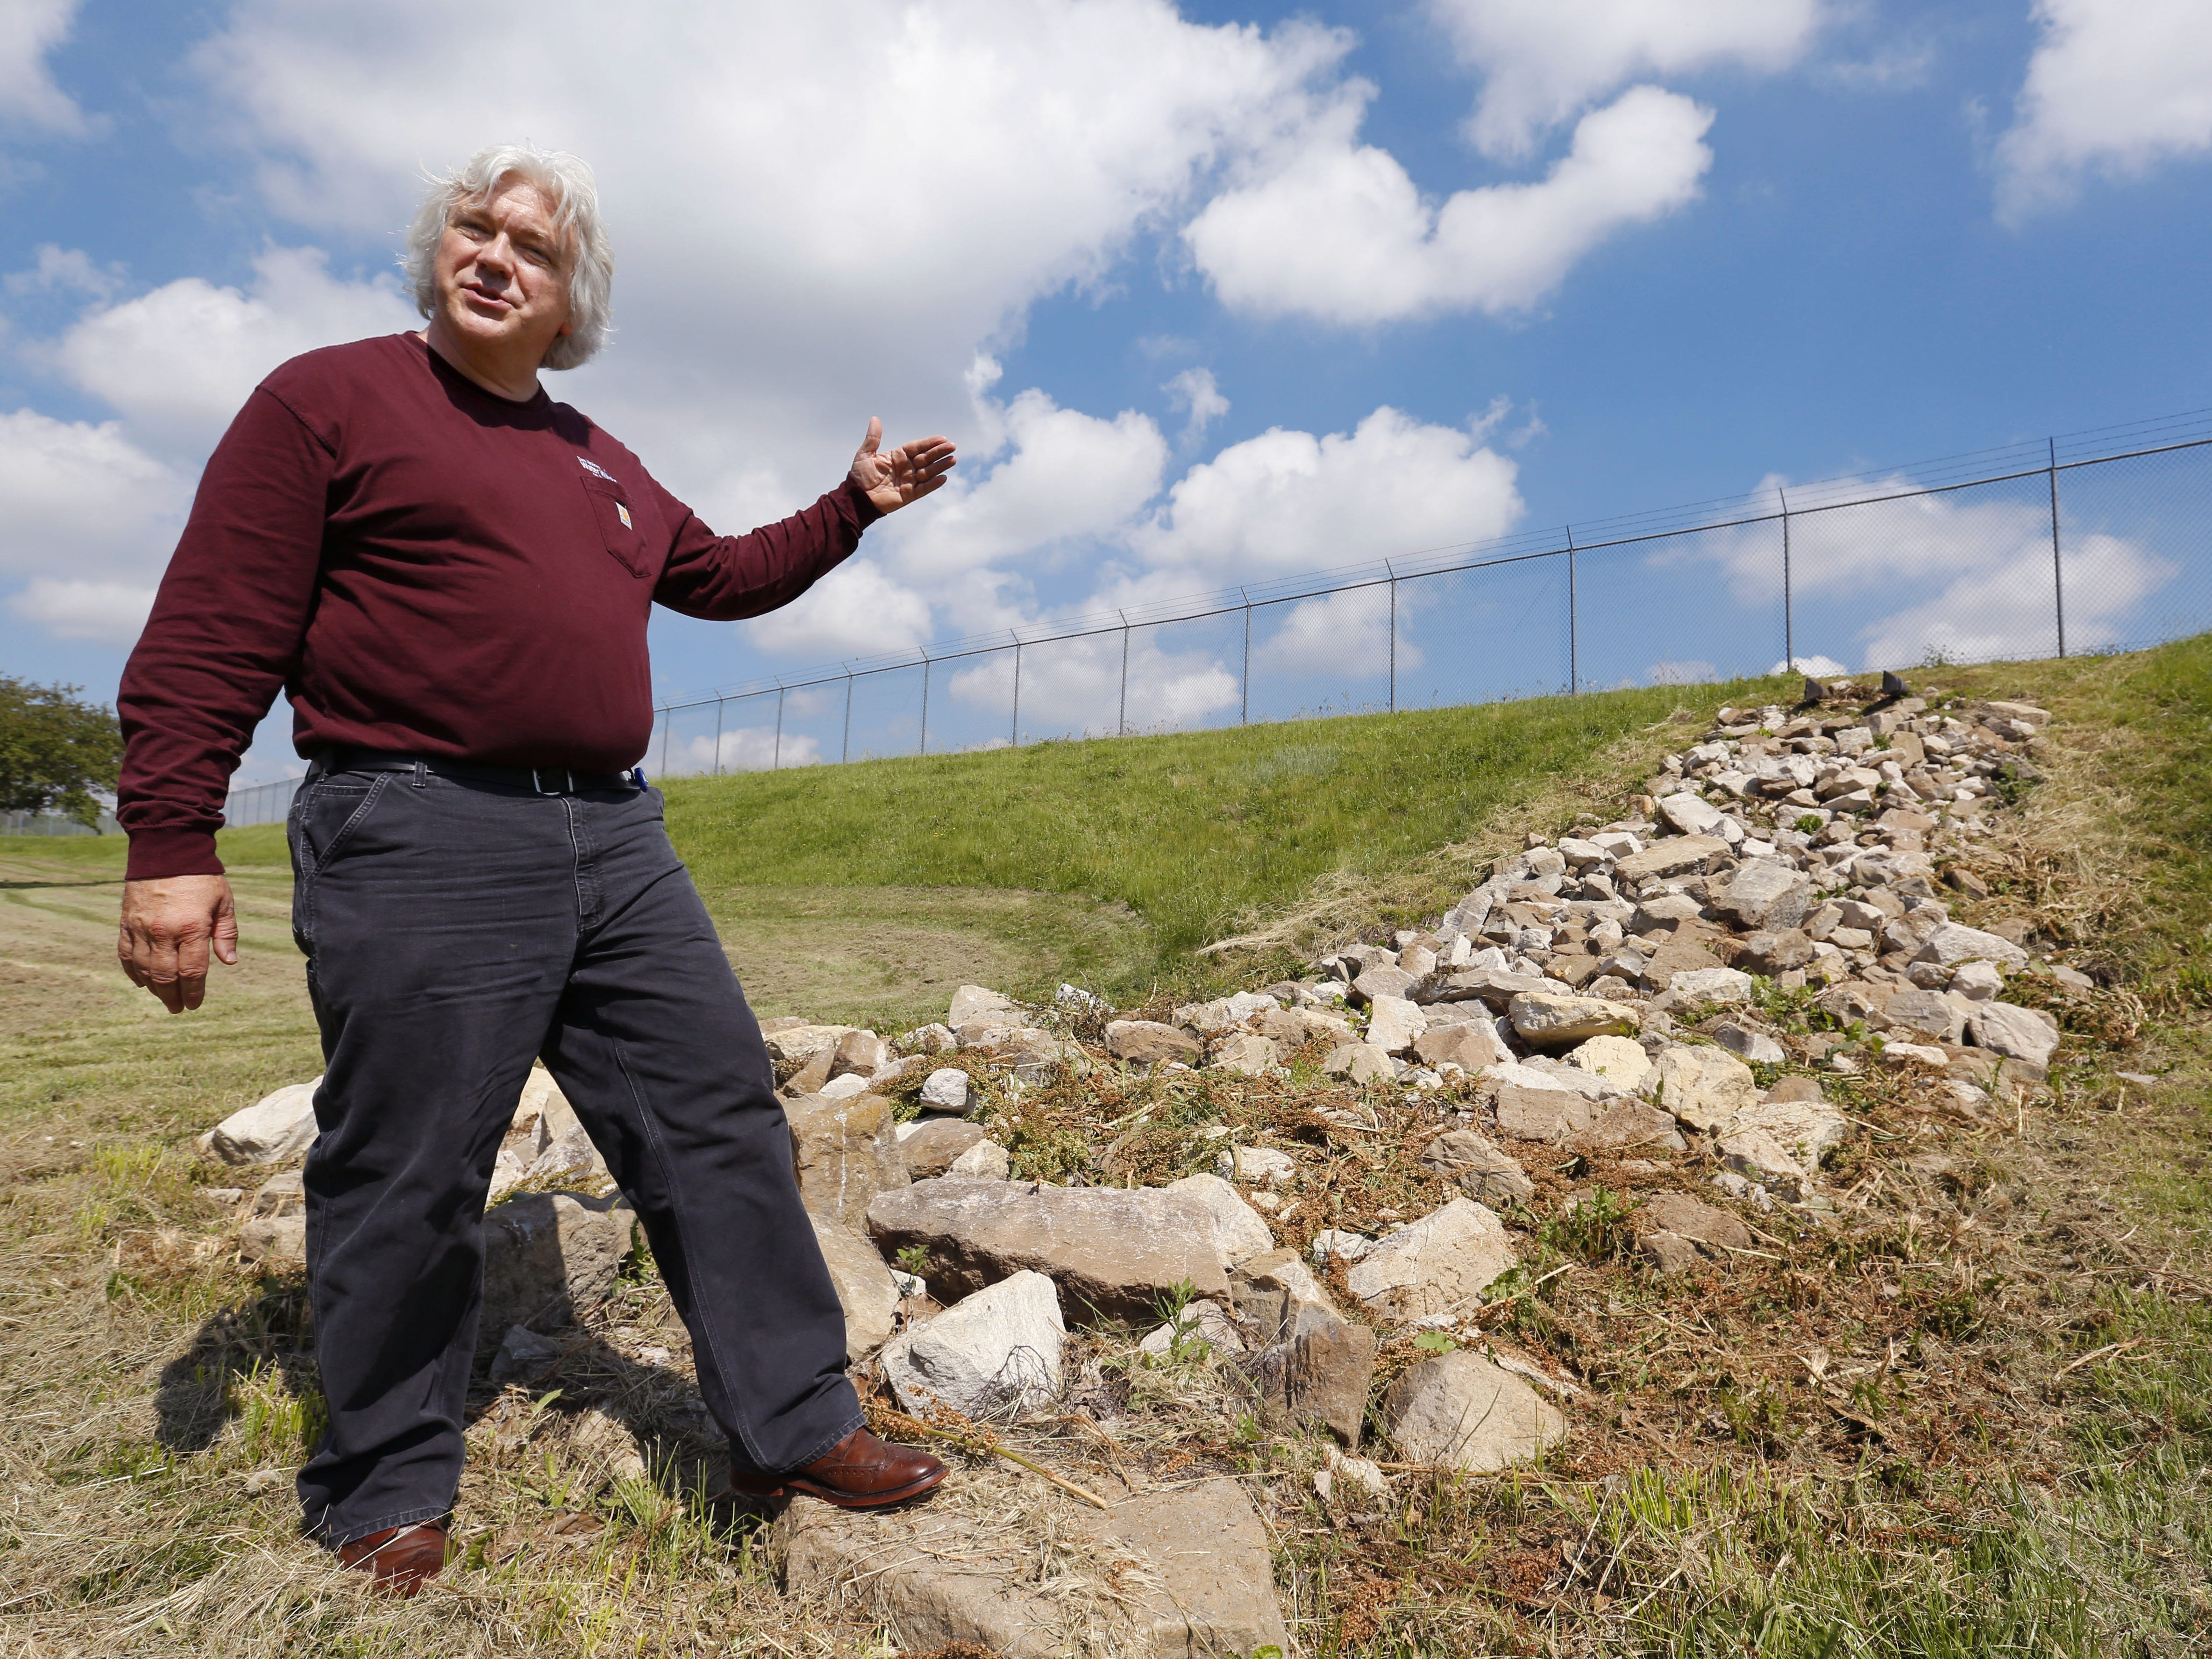 Bill Stowe shows the area where discharge from the de-nitrification units is expelled from the water works into the ground. Instead of placing it back into the river, where it would have to be removed again by other water treatment facilities, the water with a mixture of nitrates and salt is left to seep back into the ground.